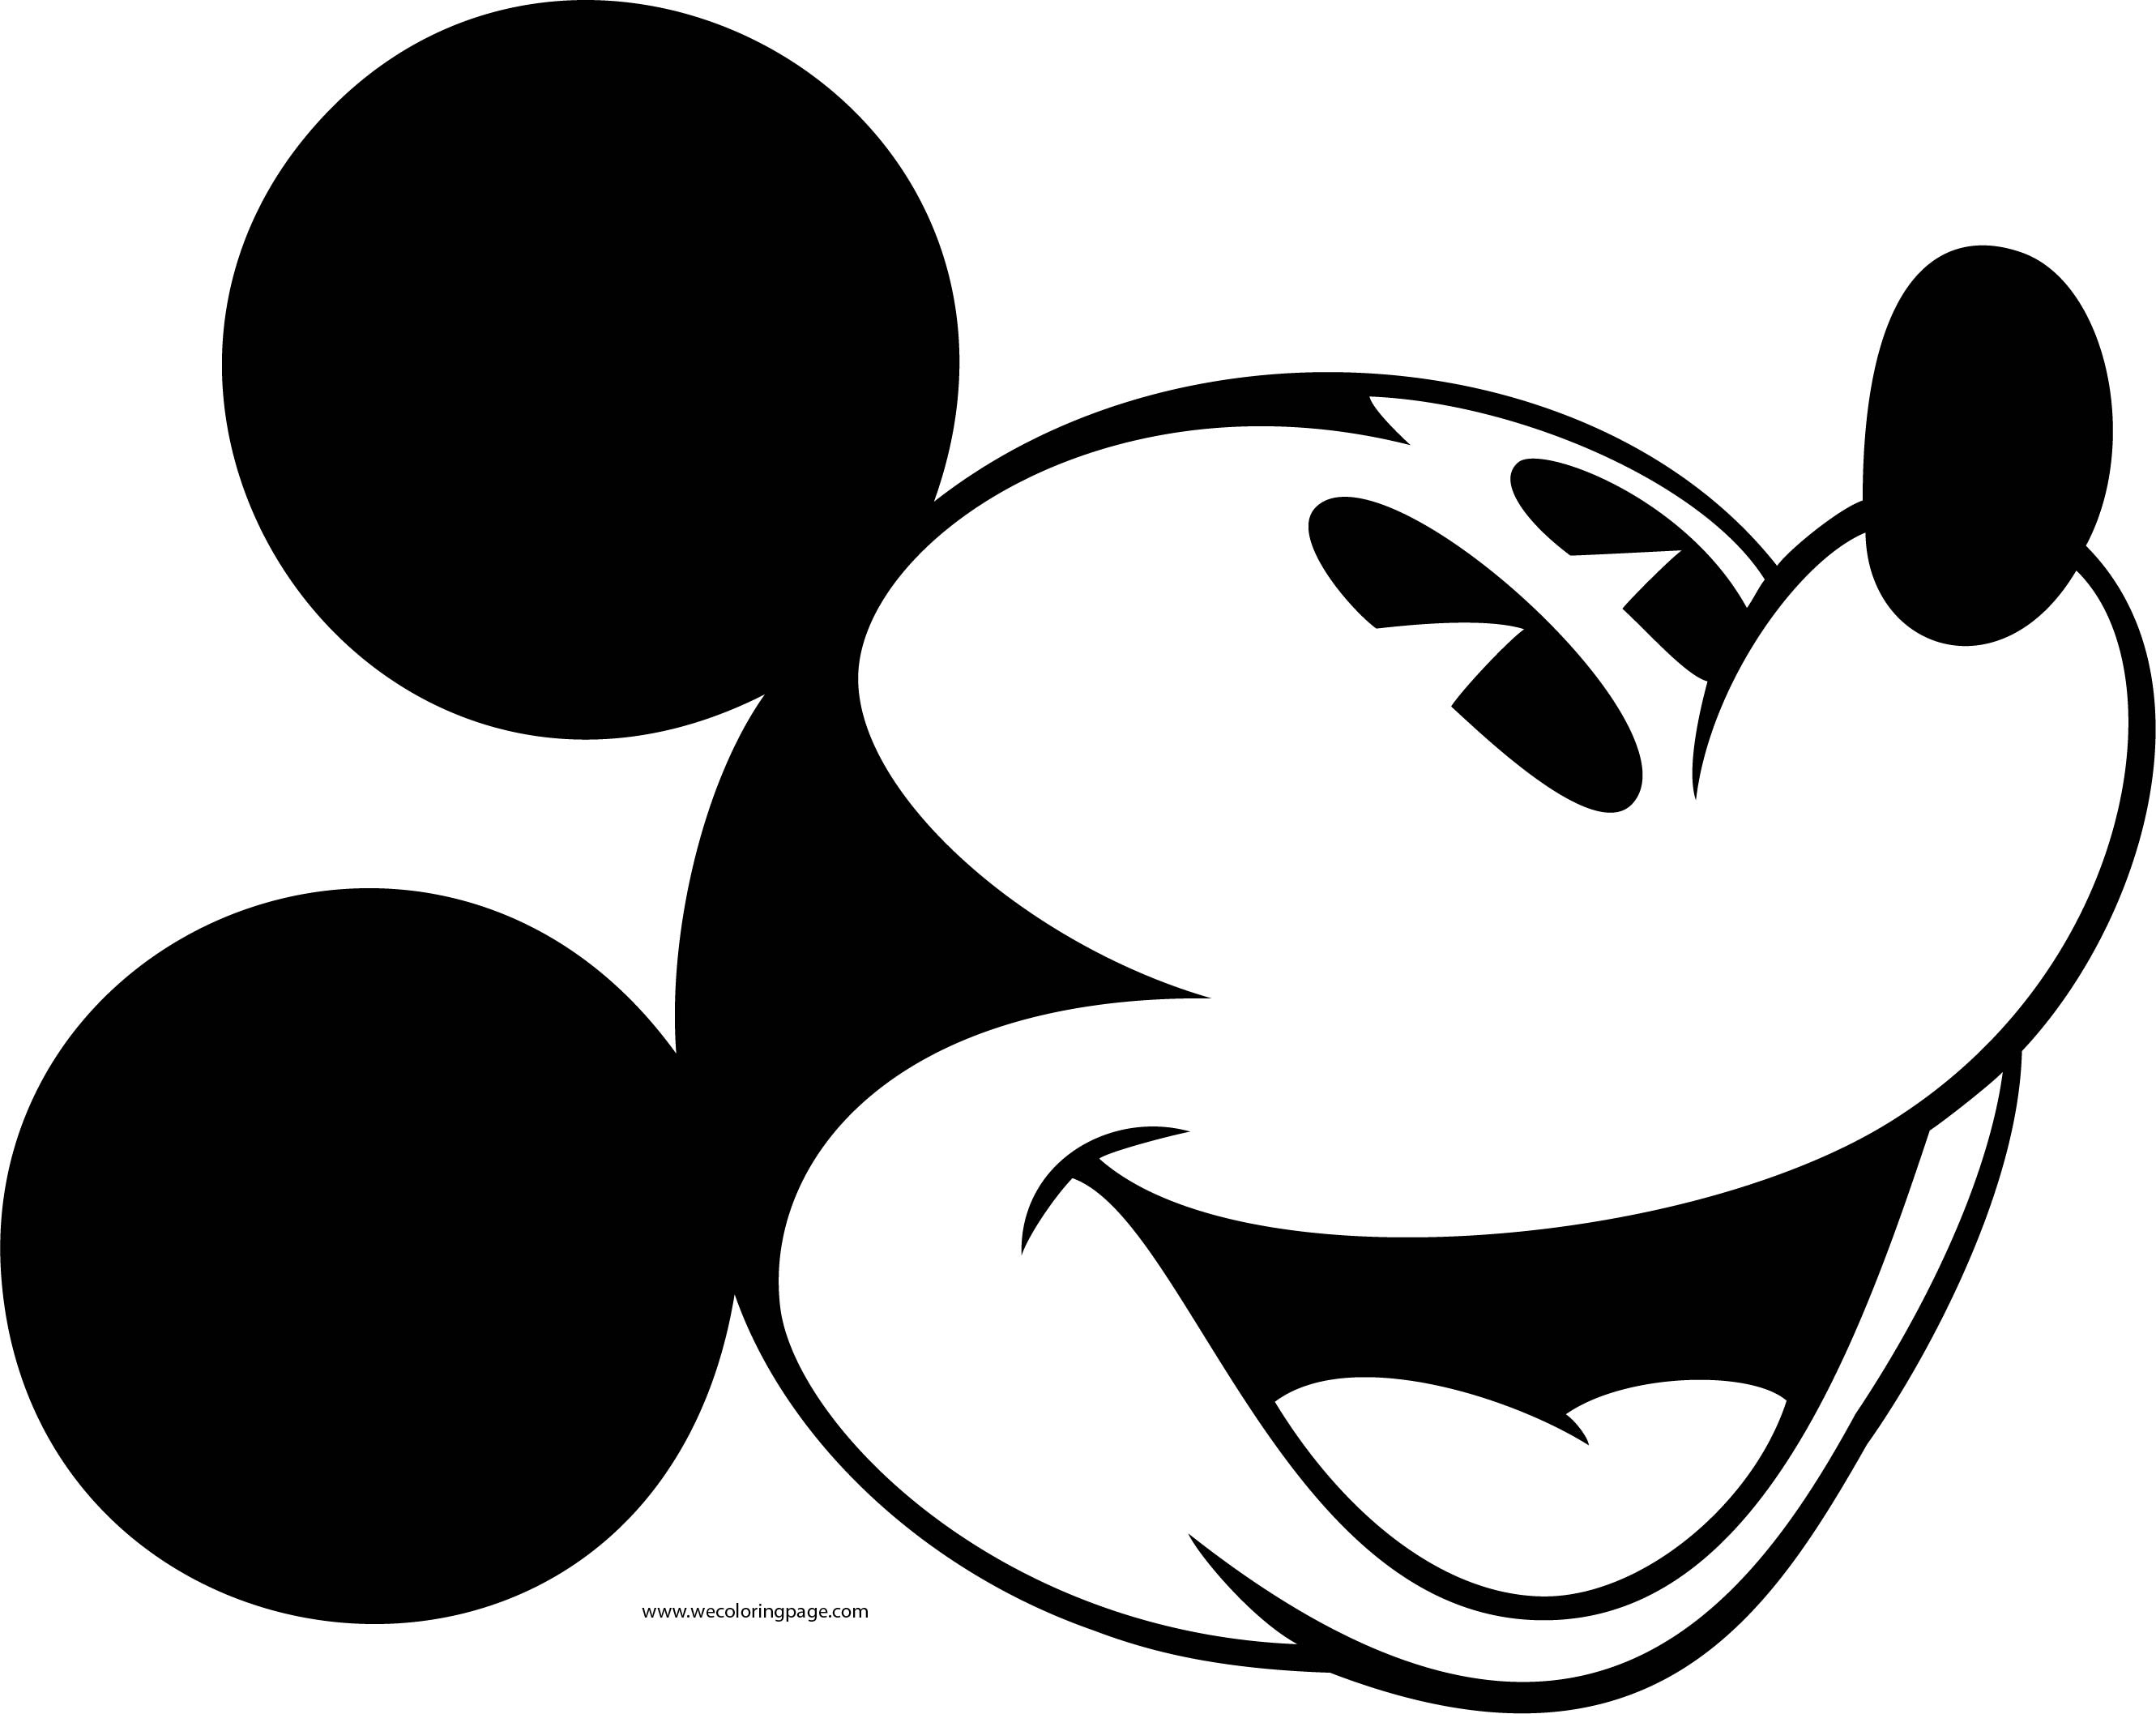 Free Minnie Mouse Free Clip Art, Download Free Clip Art, Free Clip ... | 2115x2661